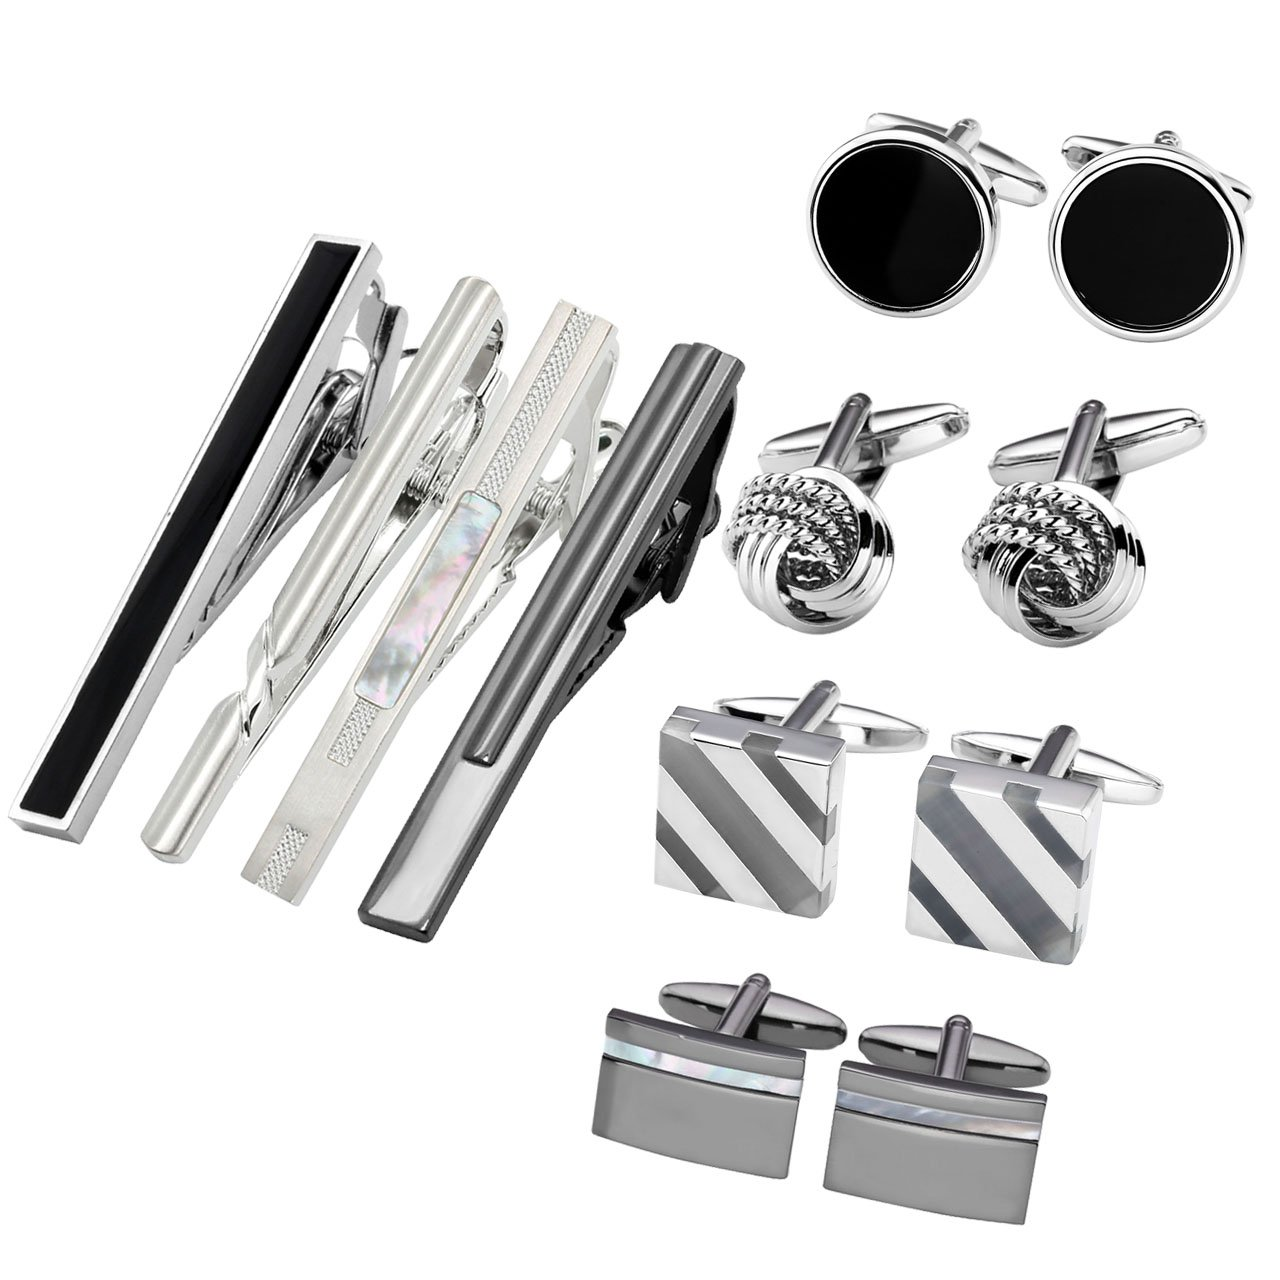 Jovivi 12pcs Stainless Steel Men's Classic Silver Cufflinks and Tie Bar Set for French Cuff Dress Shirts with Gift Box AJ1010102579